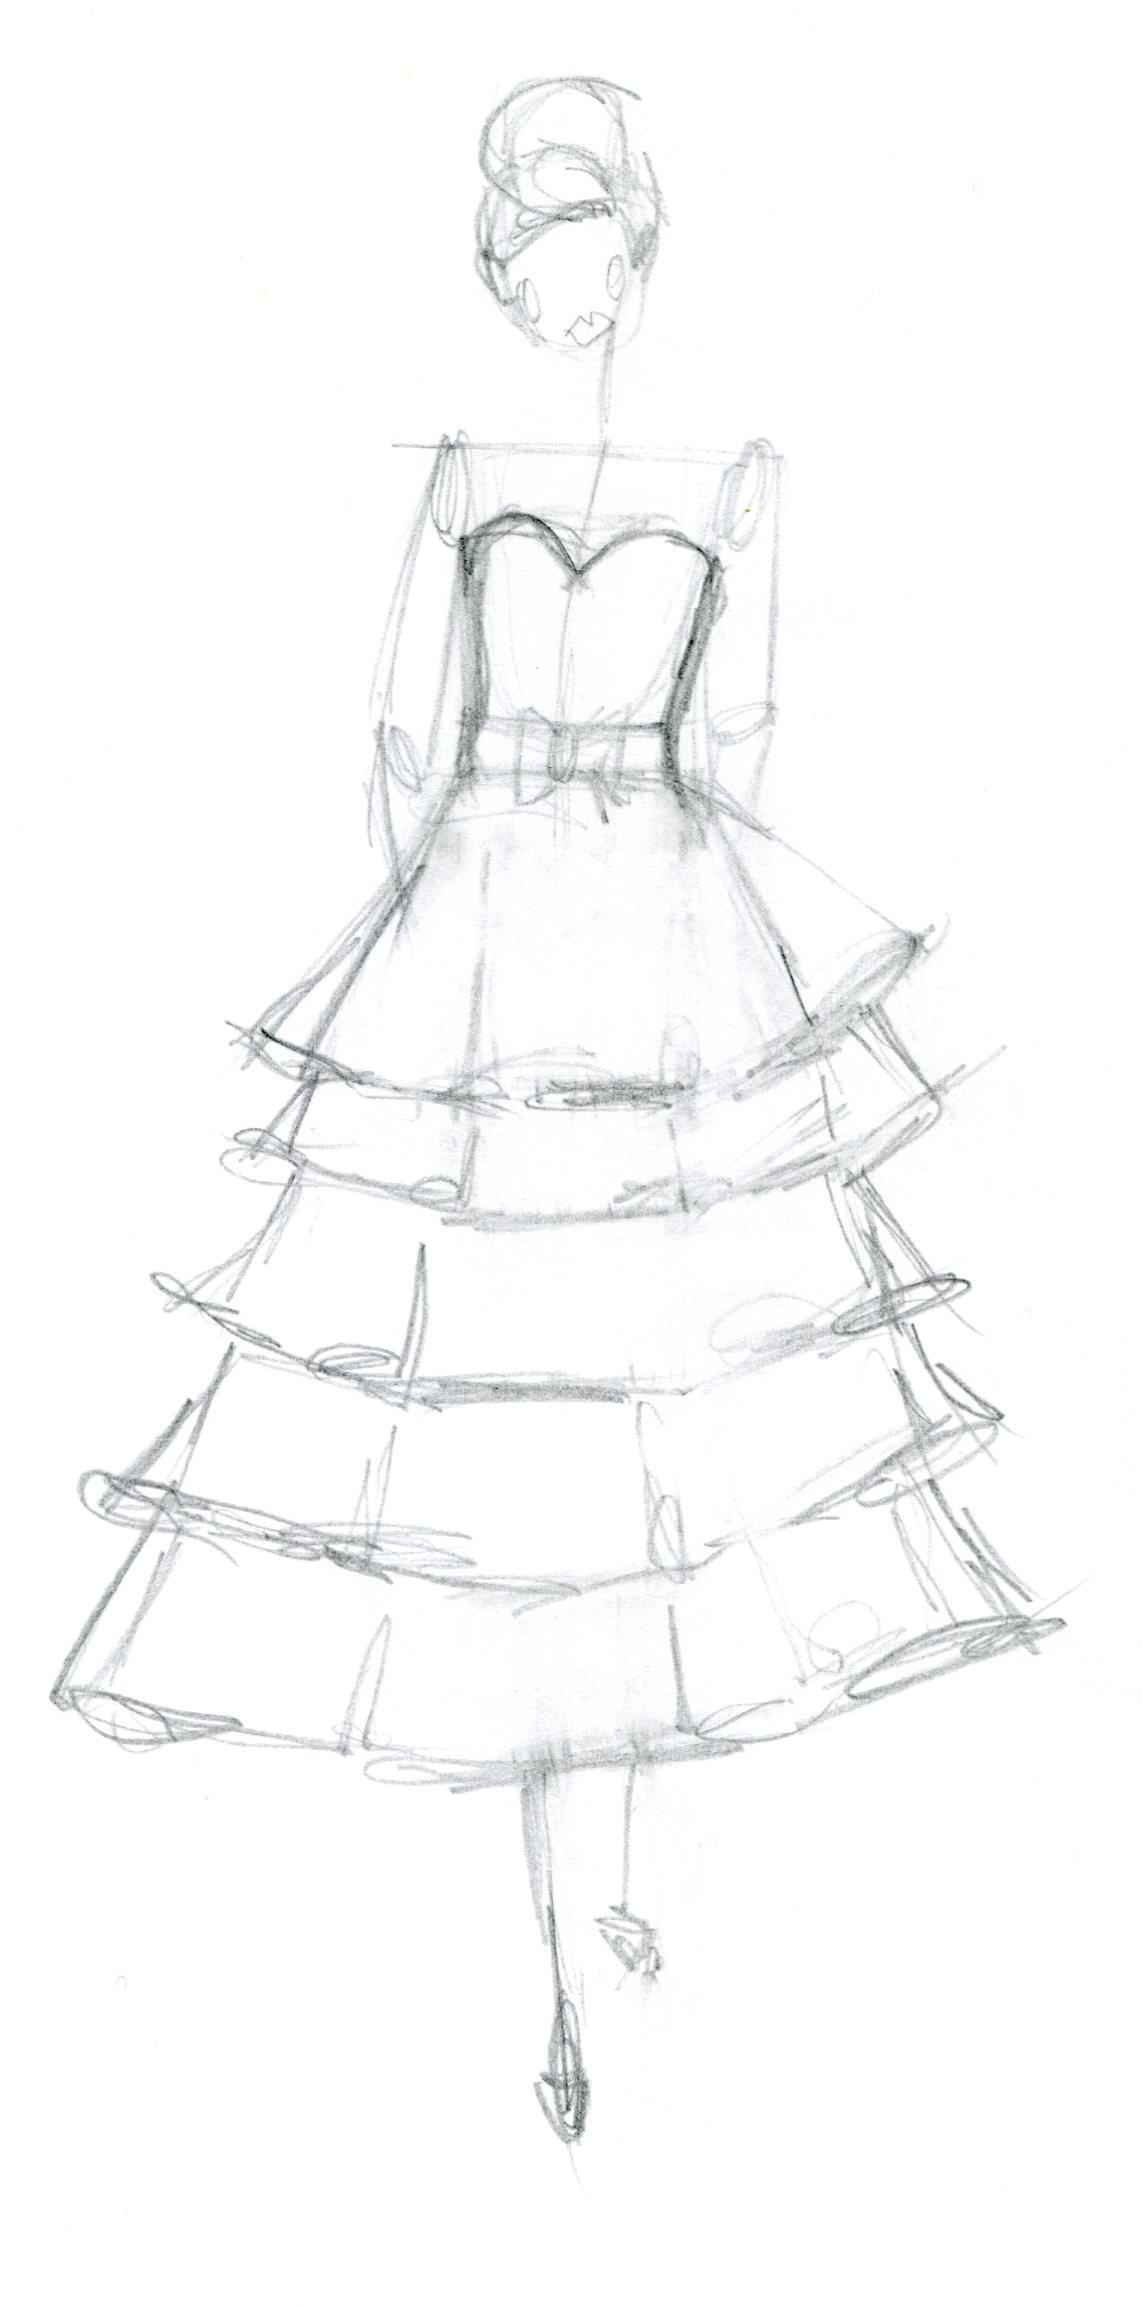 SKETCH : frou frou. cotillion to quirky - image 1 - student project